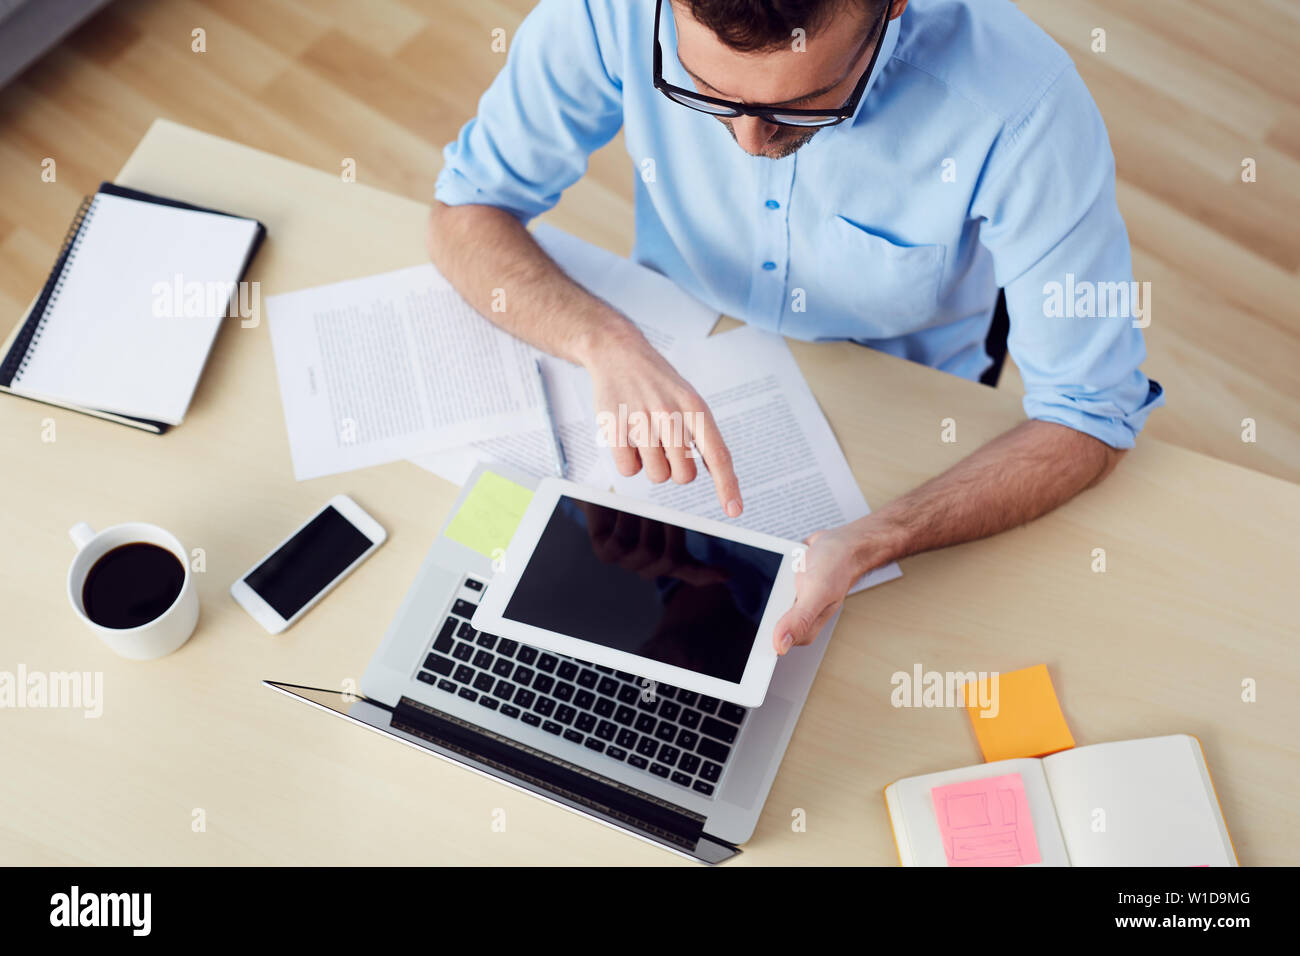 Top view of man using digital tablet sitting at  desk with documents and laptop Stock Photo